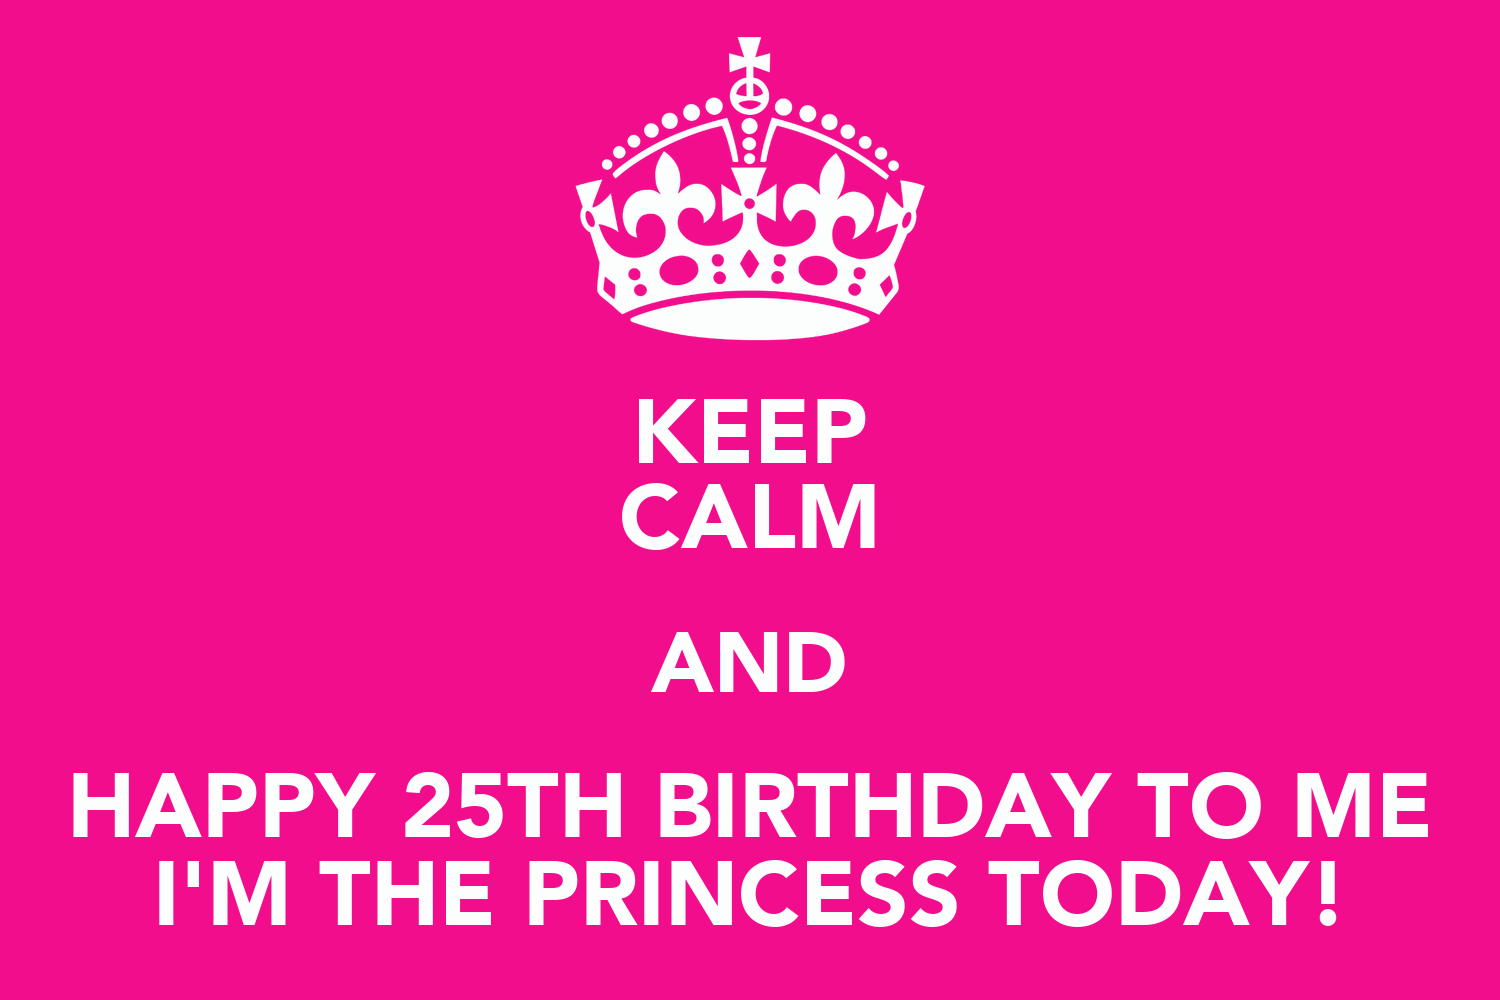 KEEP CALM AND HAPPY 25TH BIRTHDAY TO ME I'M THE PRINCESS